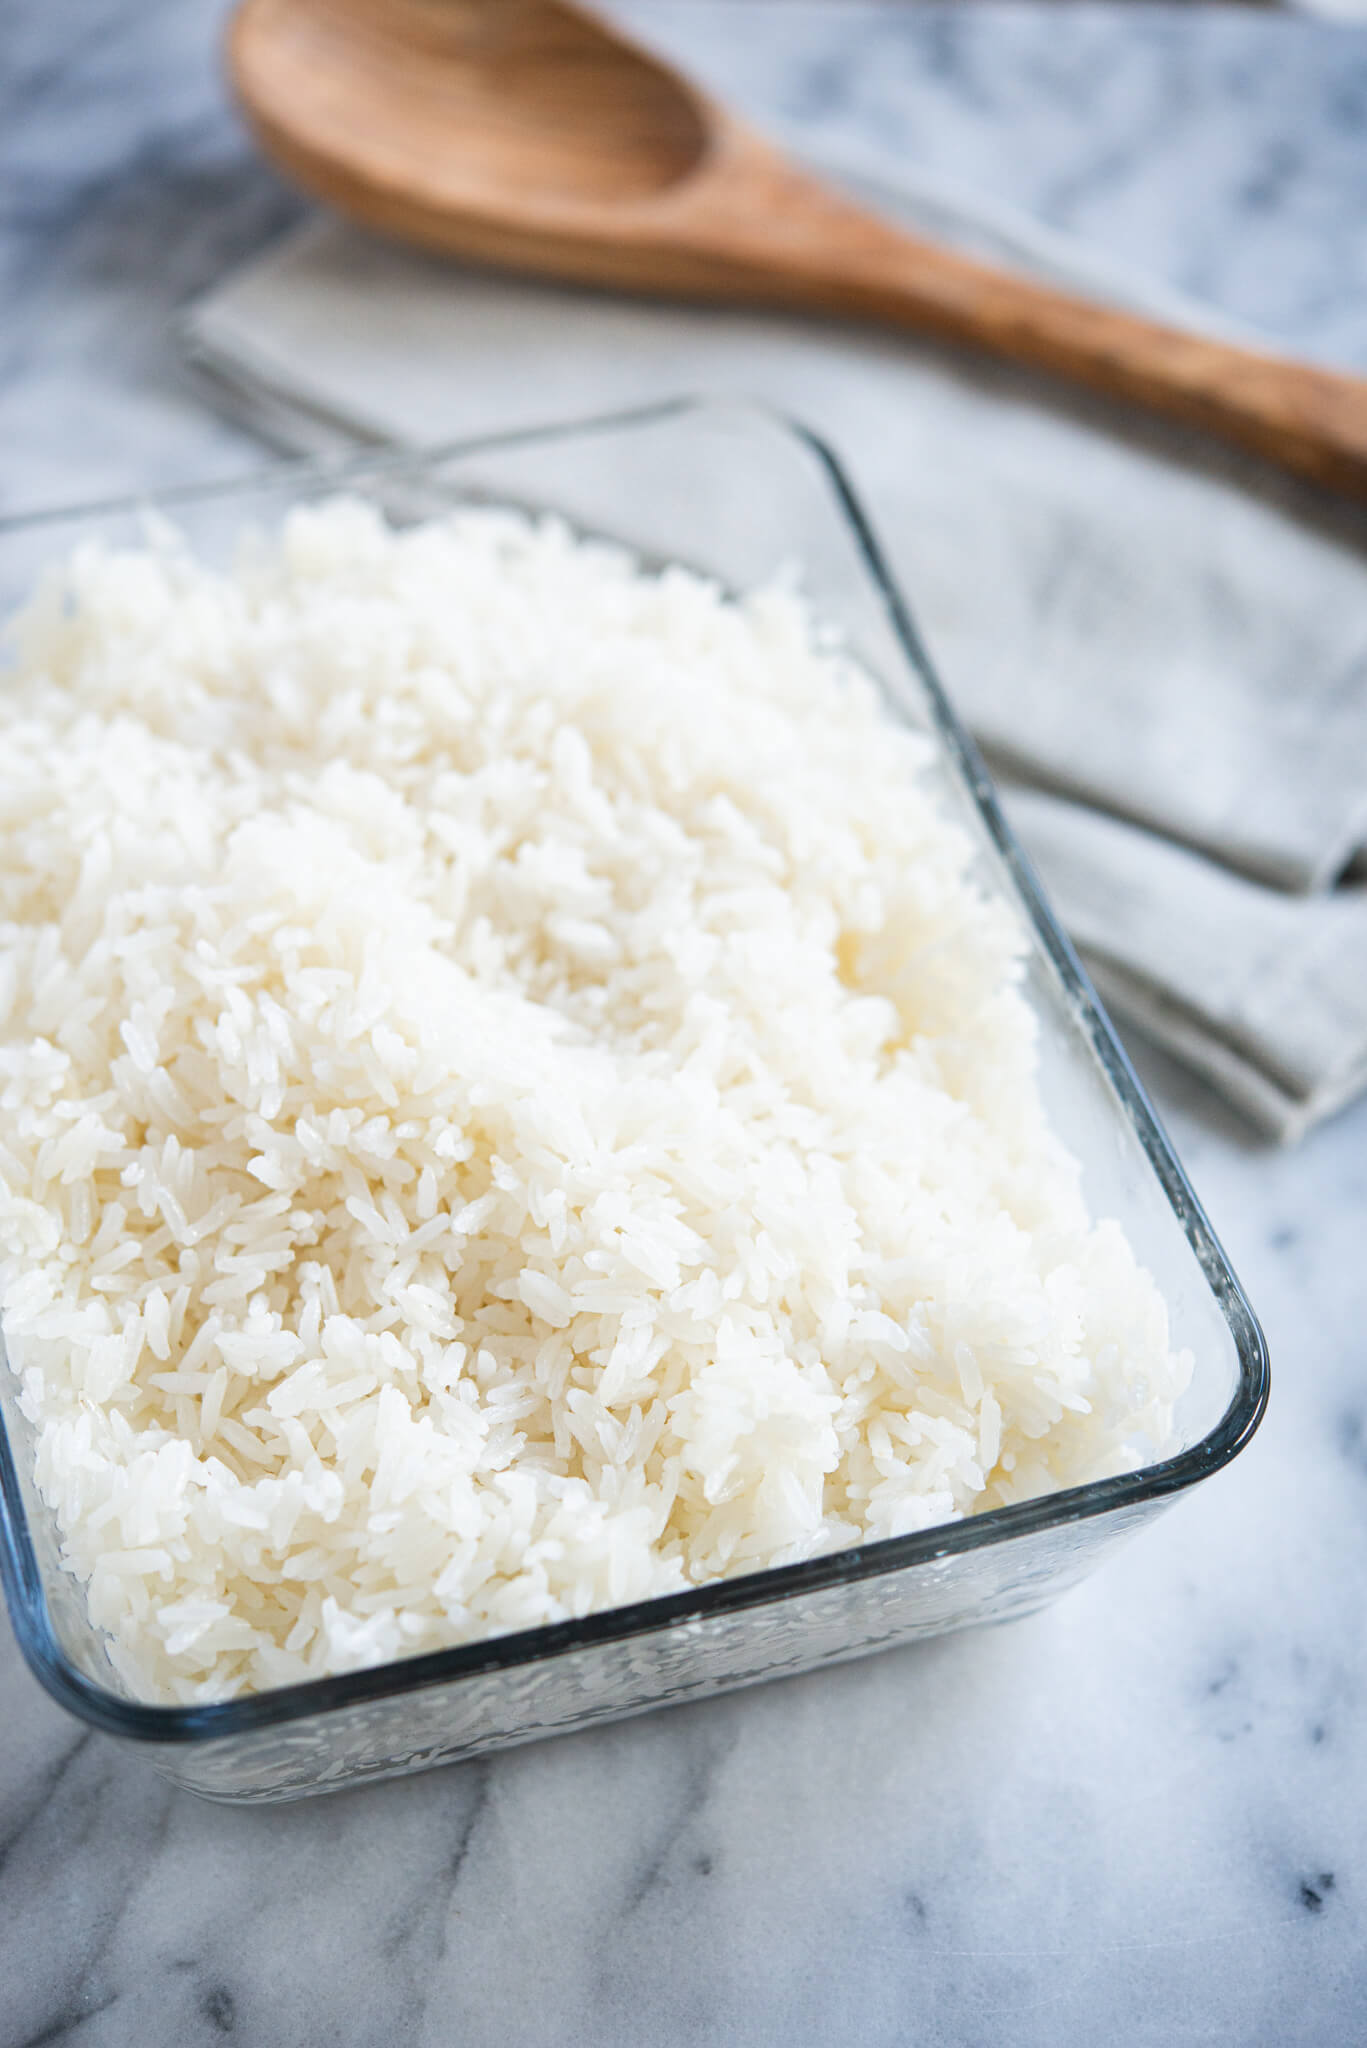 cooked white coconut rice in a glass dish with a wooden spoon on a marble surface